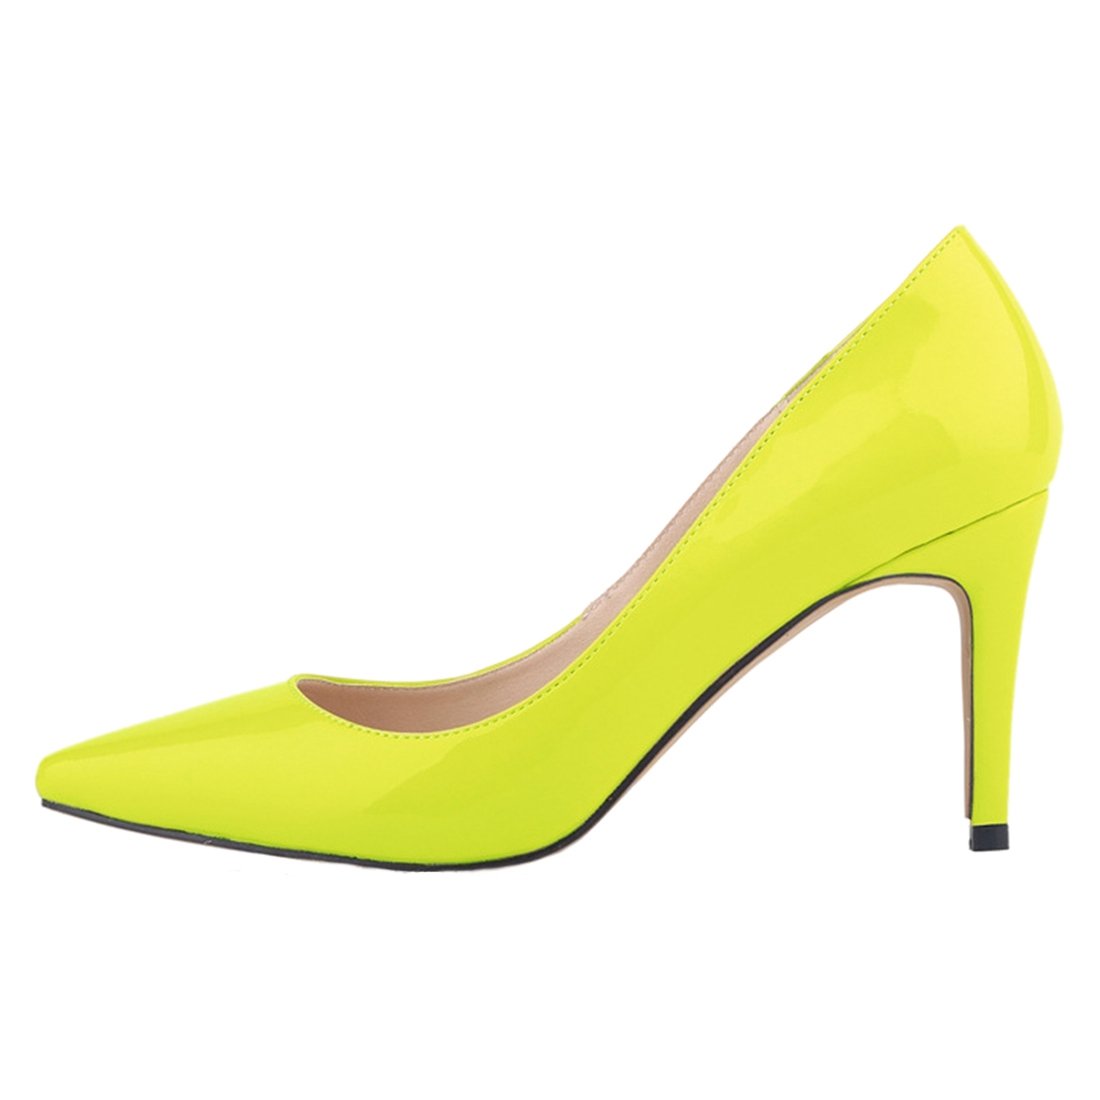 921d0b02655 Online Get Cheap Light Yellow Pumps -Aliexpress.com